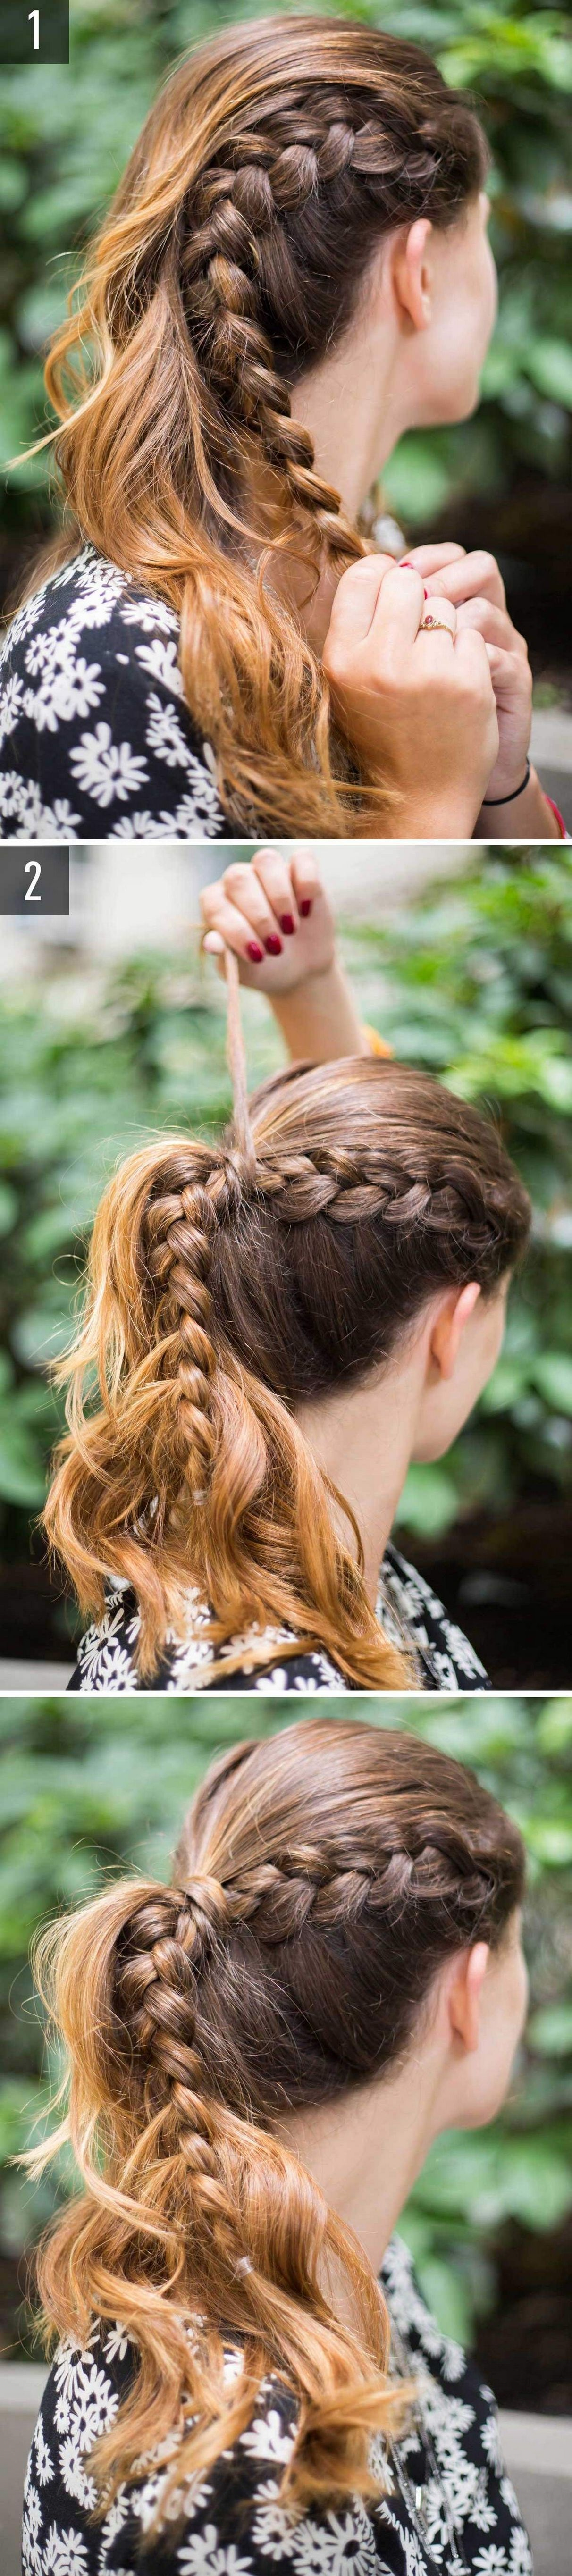 Akon hairstyle curly updos hairstyles pinterest easy summer